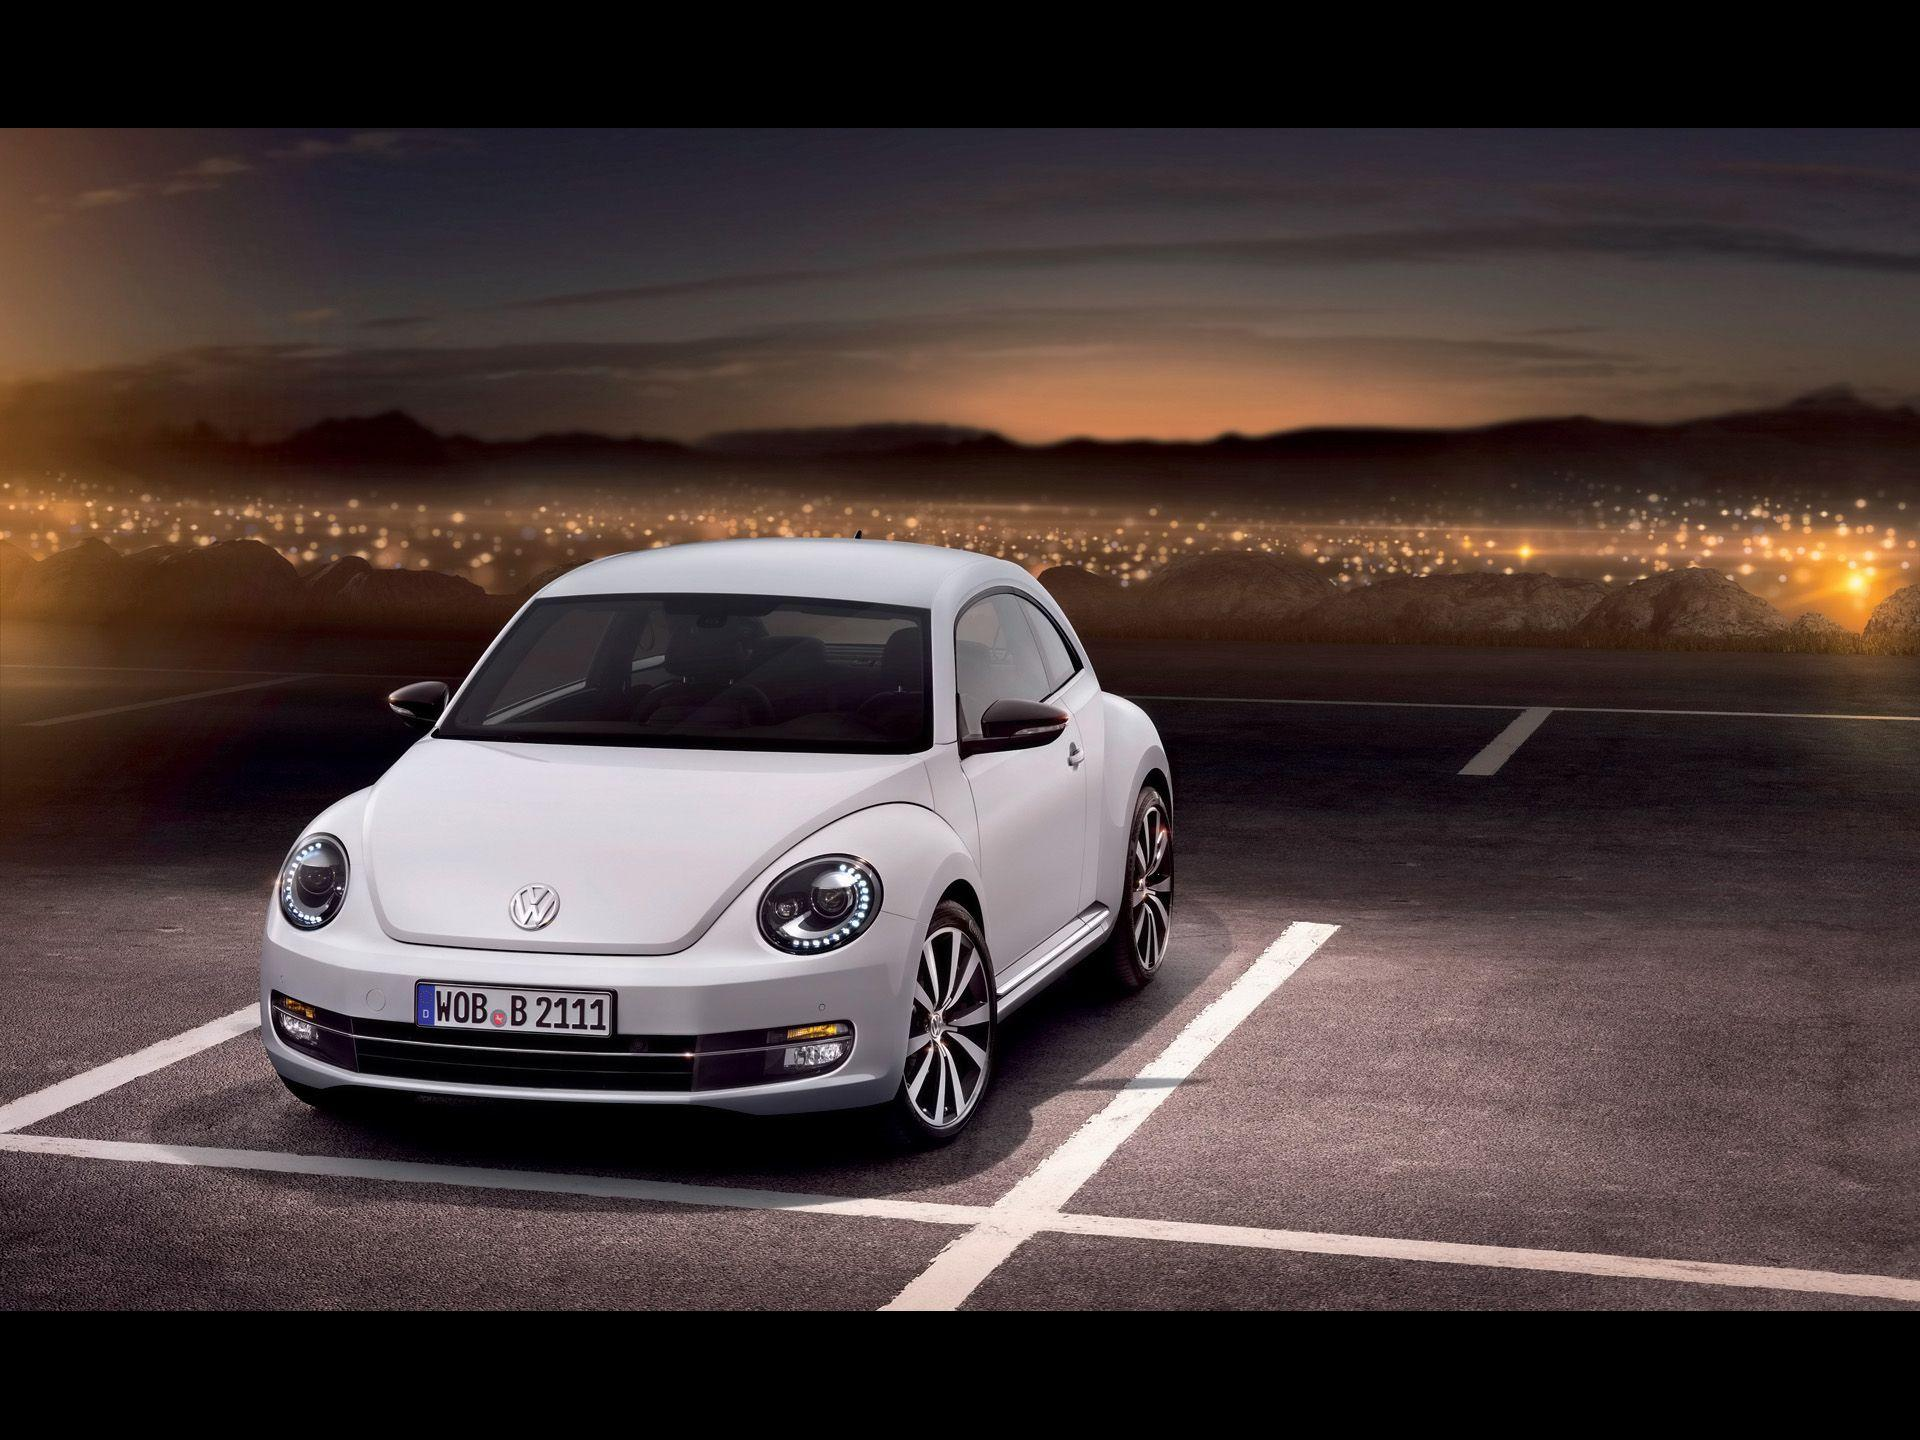 New Volkswagen Beetle wallpapers – wallpapers free download